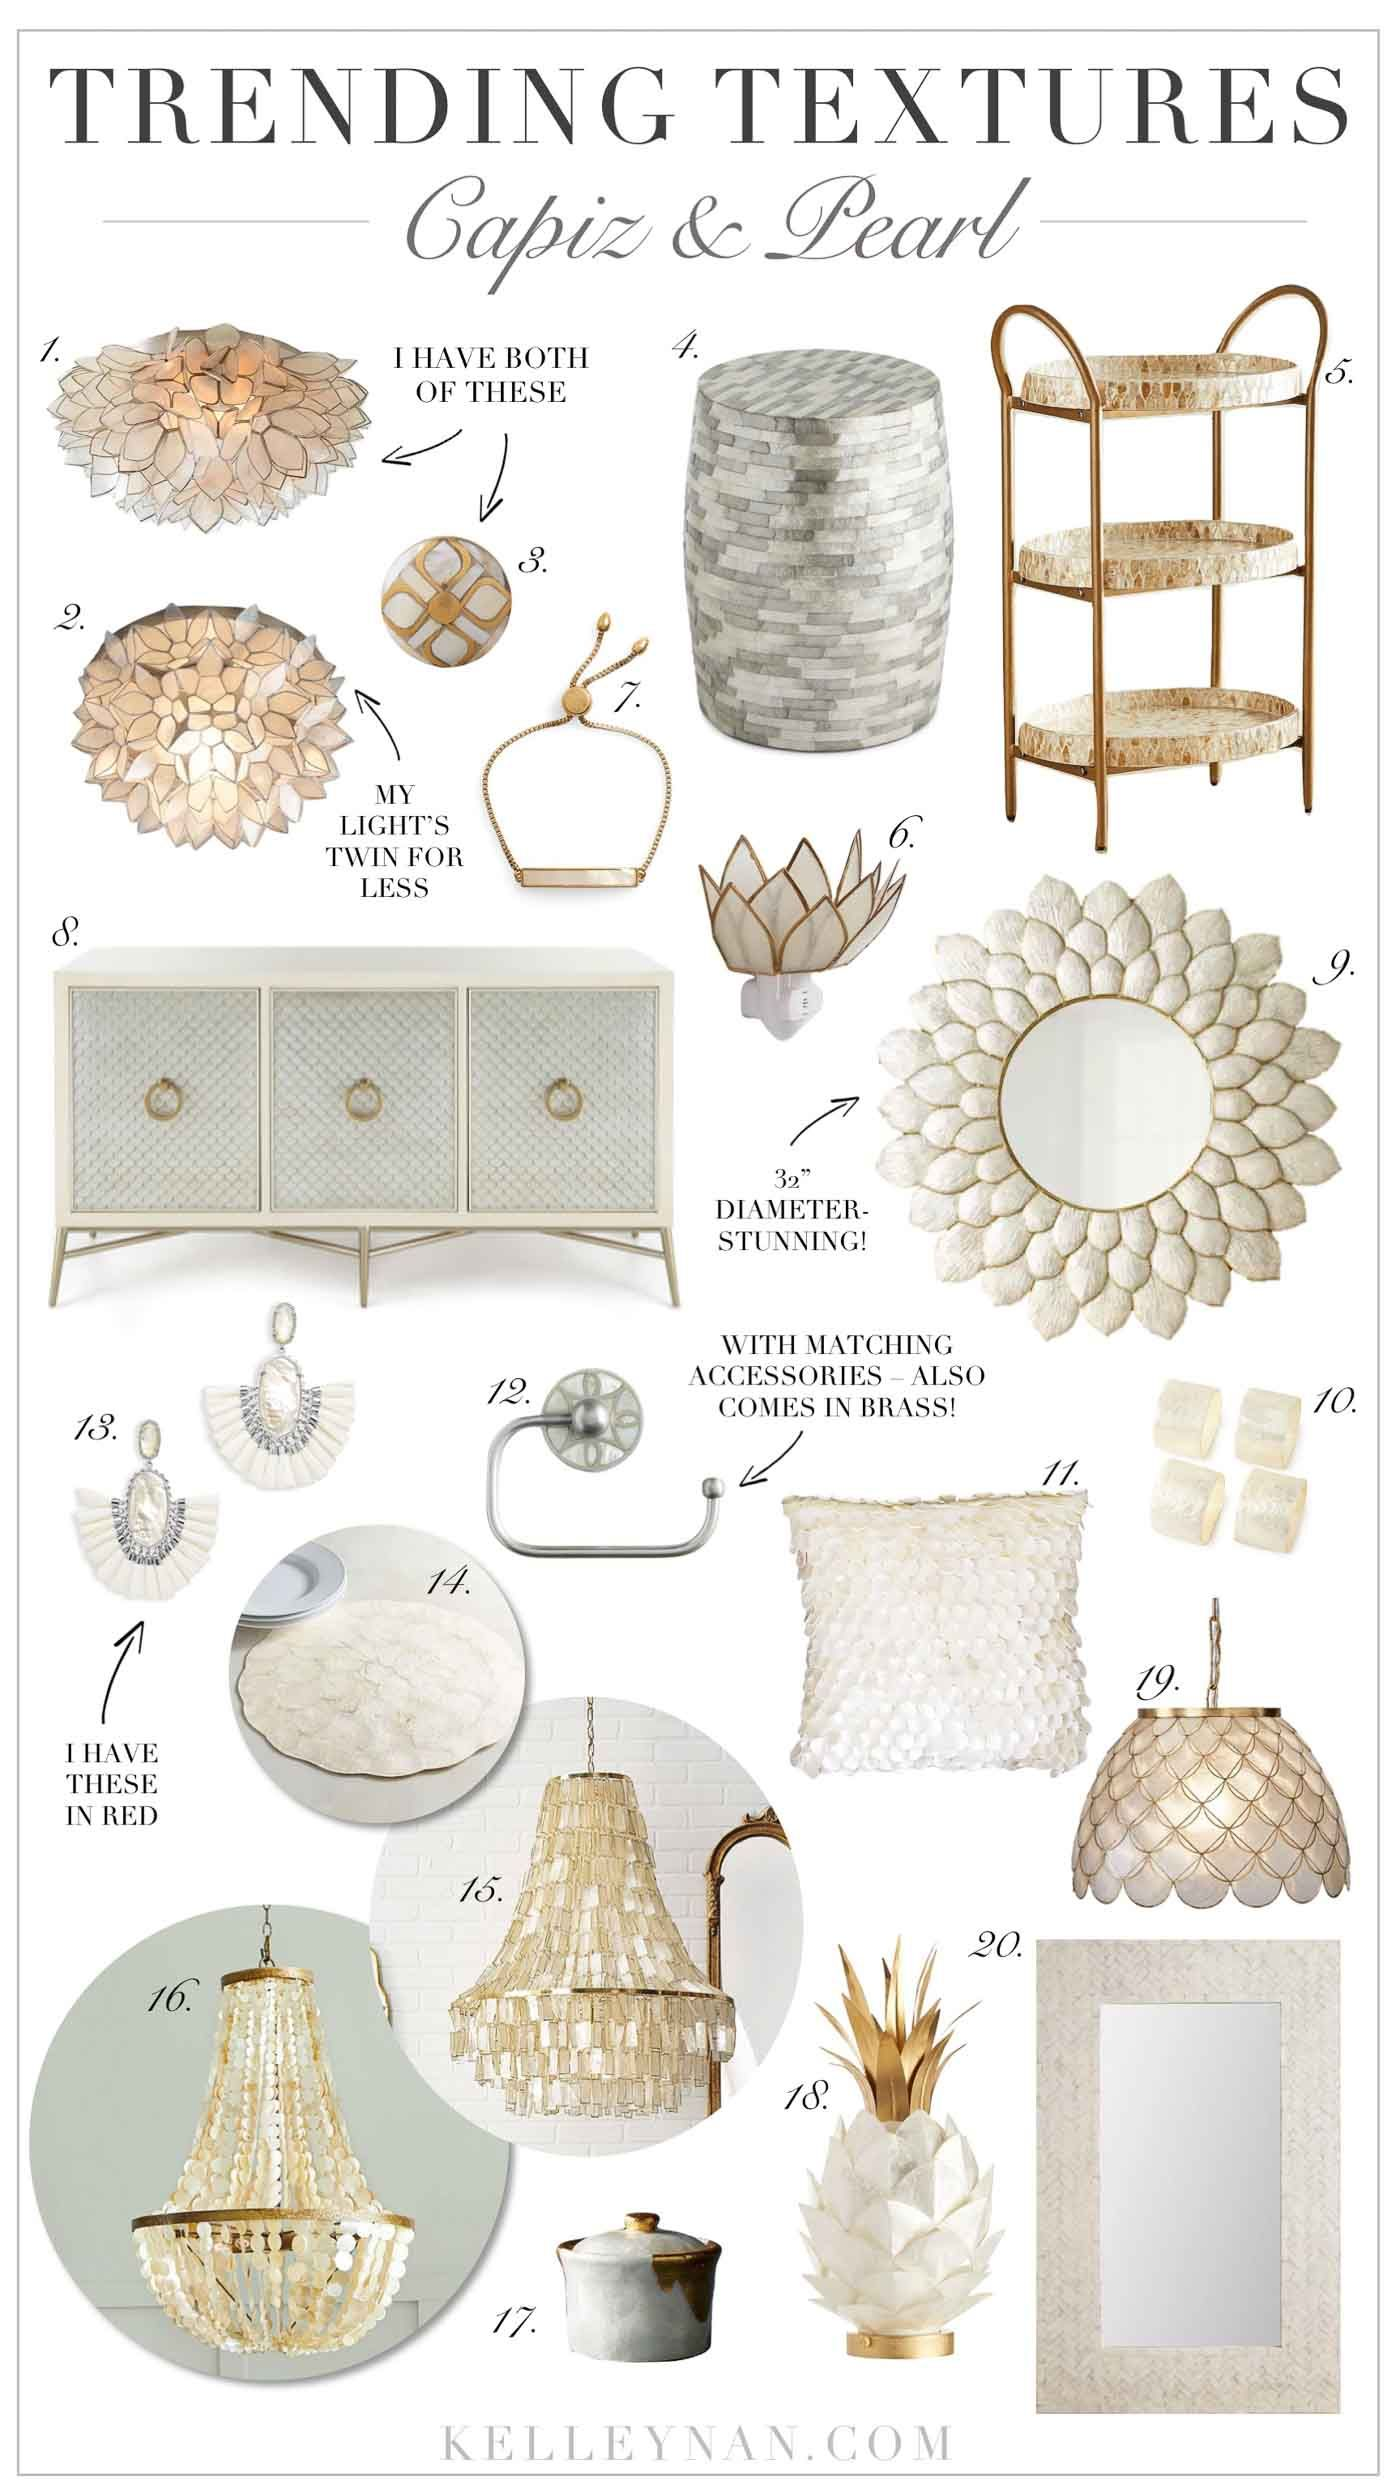 Best Capiz Shell And Pearl Home Decor From Lighting To Furniture Accessories On